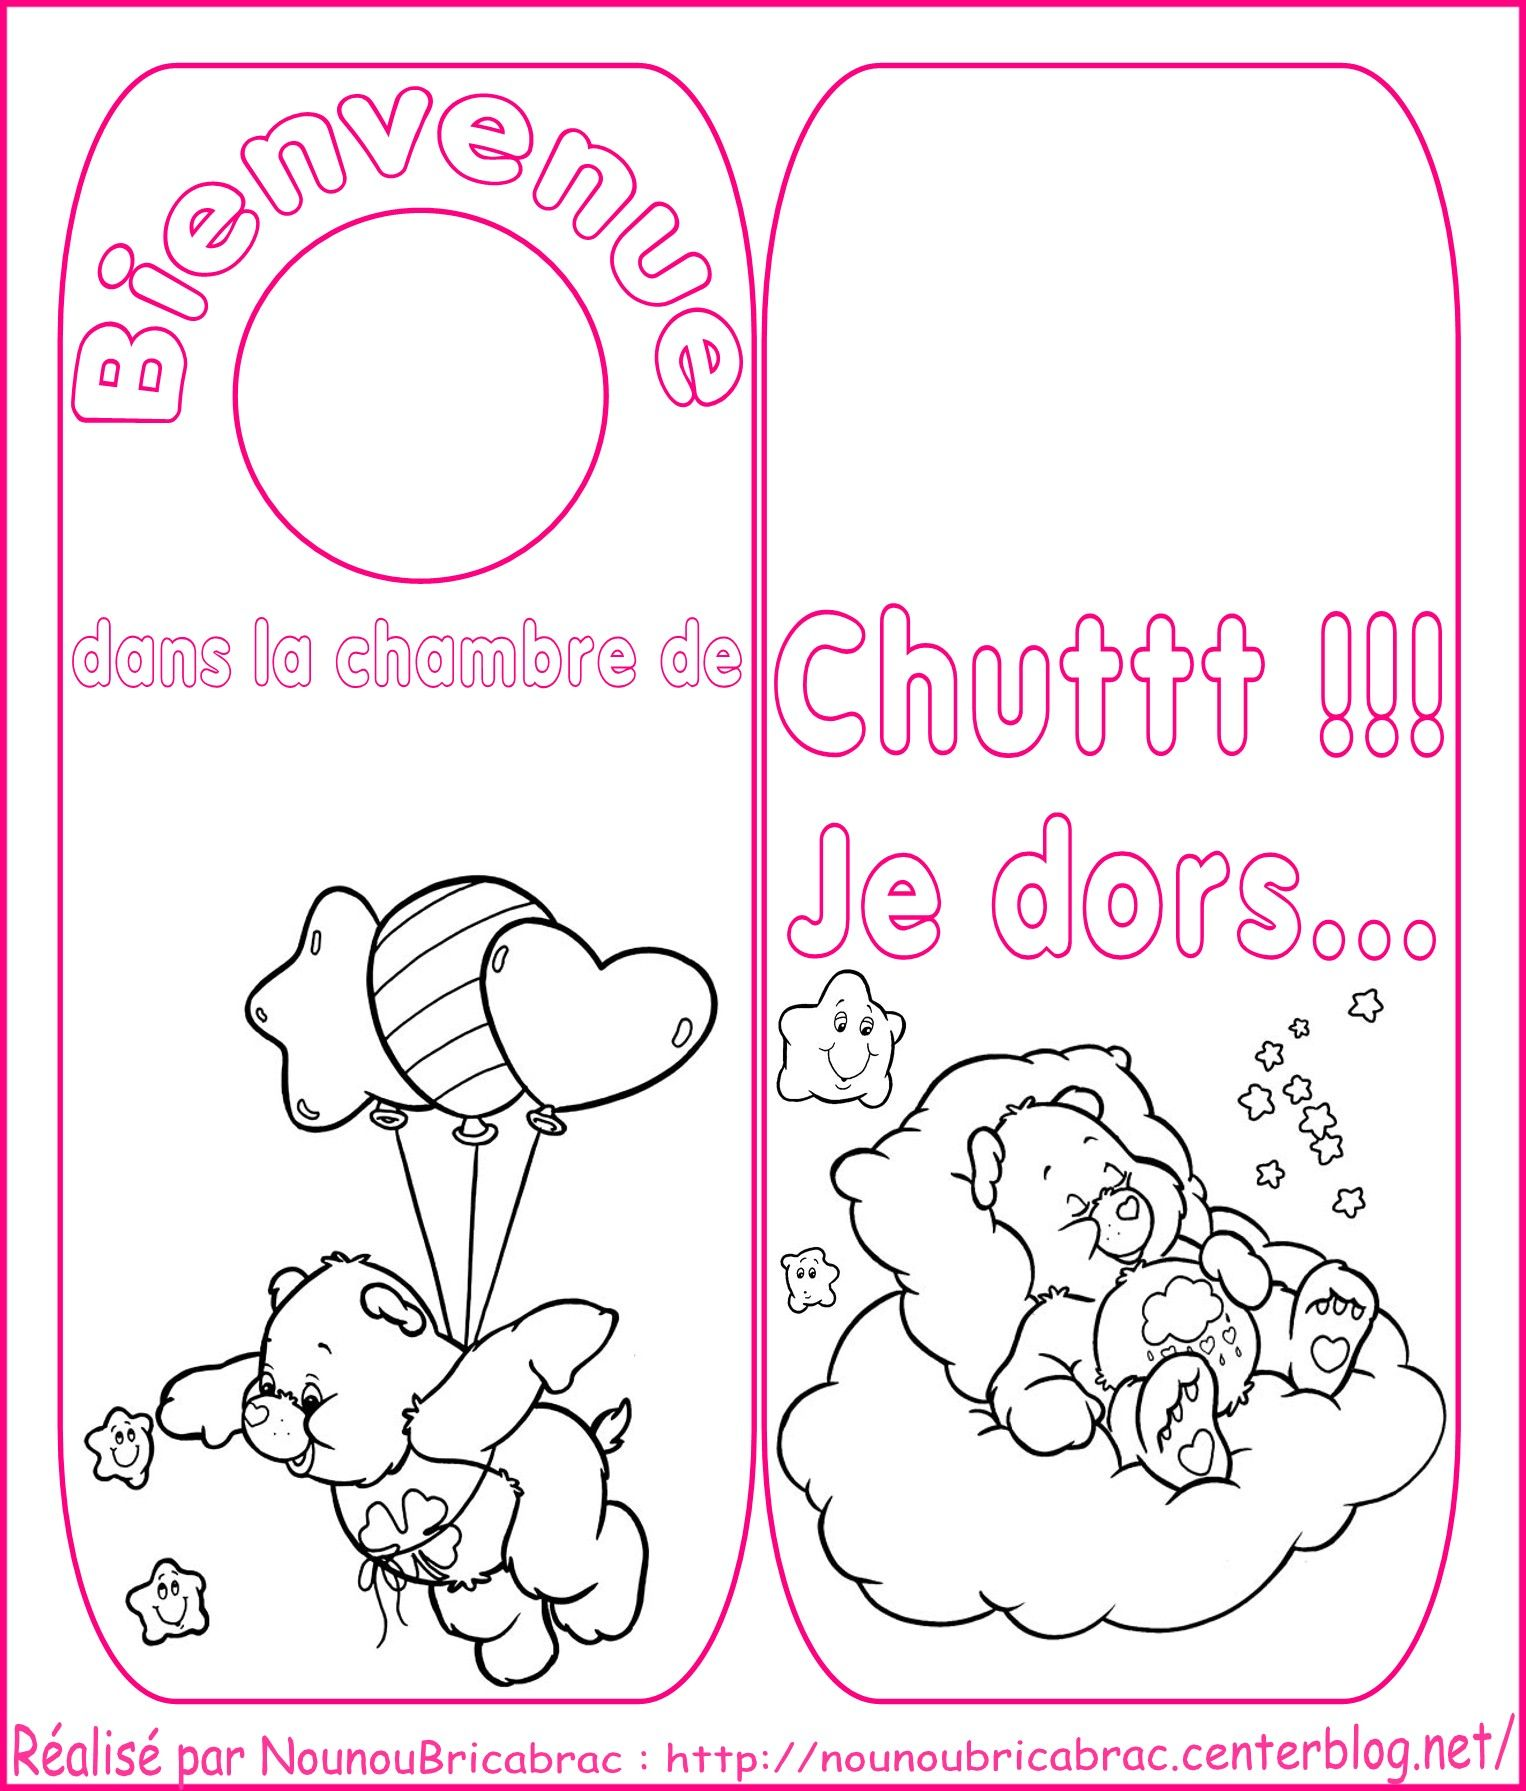 Signet de porte *Bisounours* pour chambre de ...